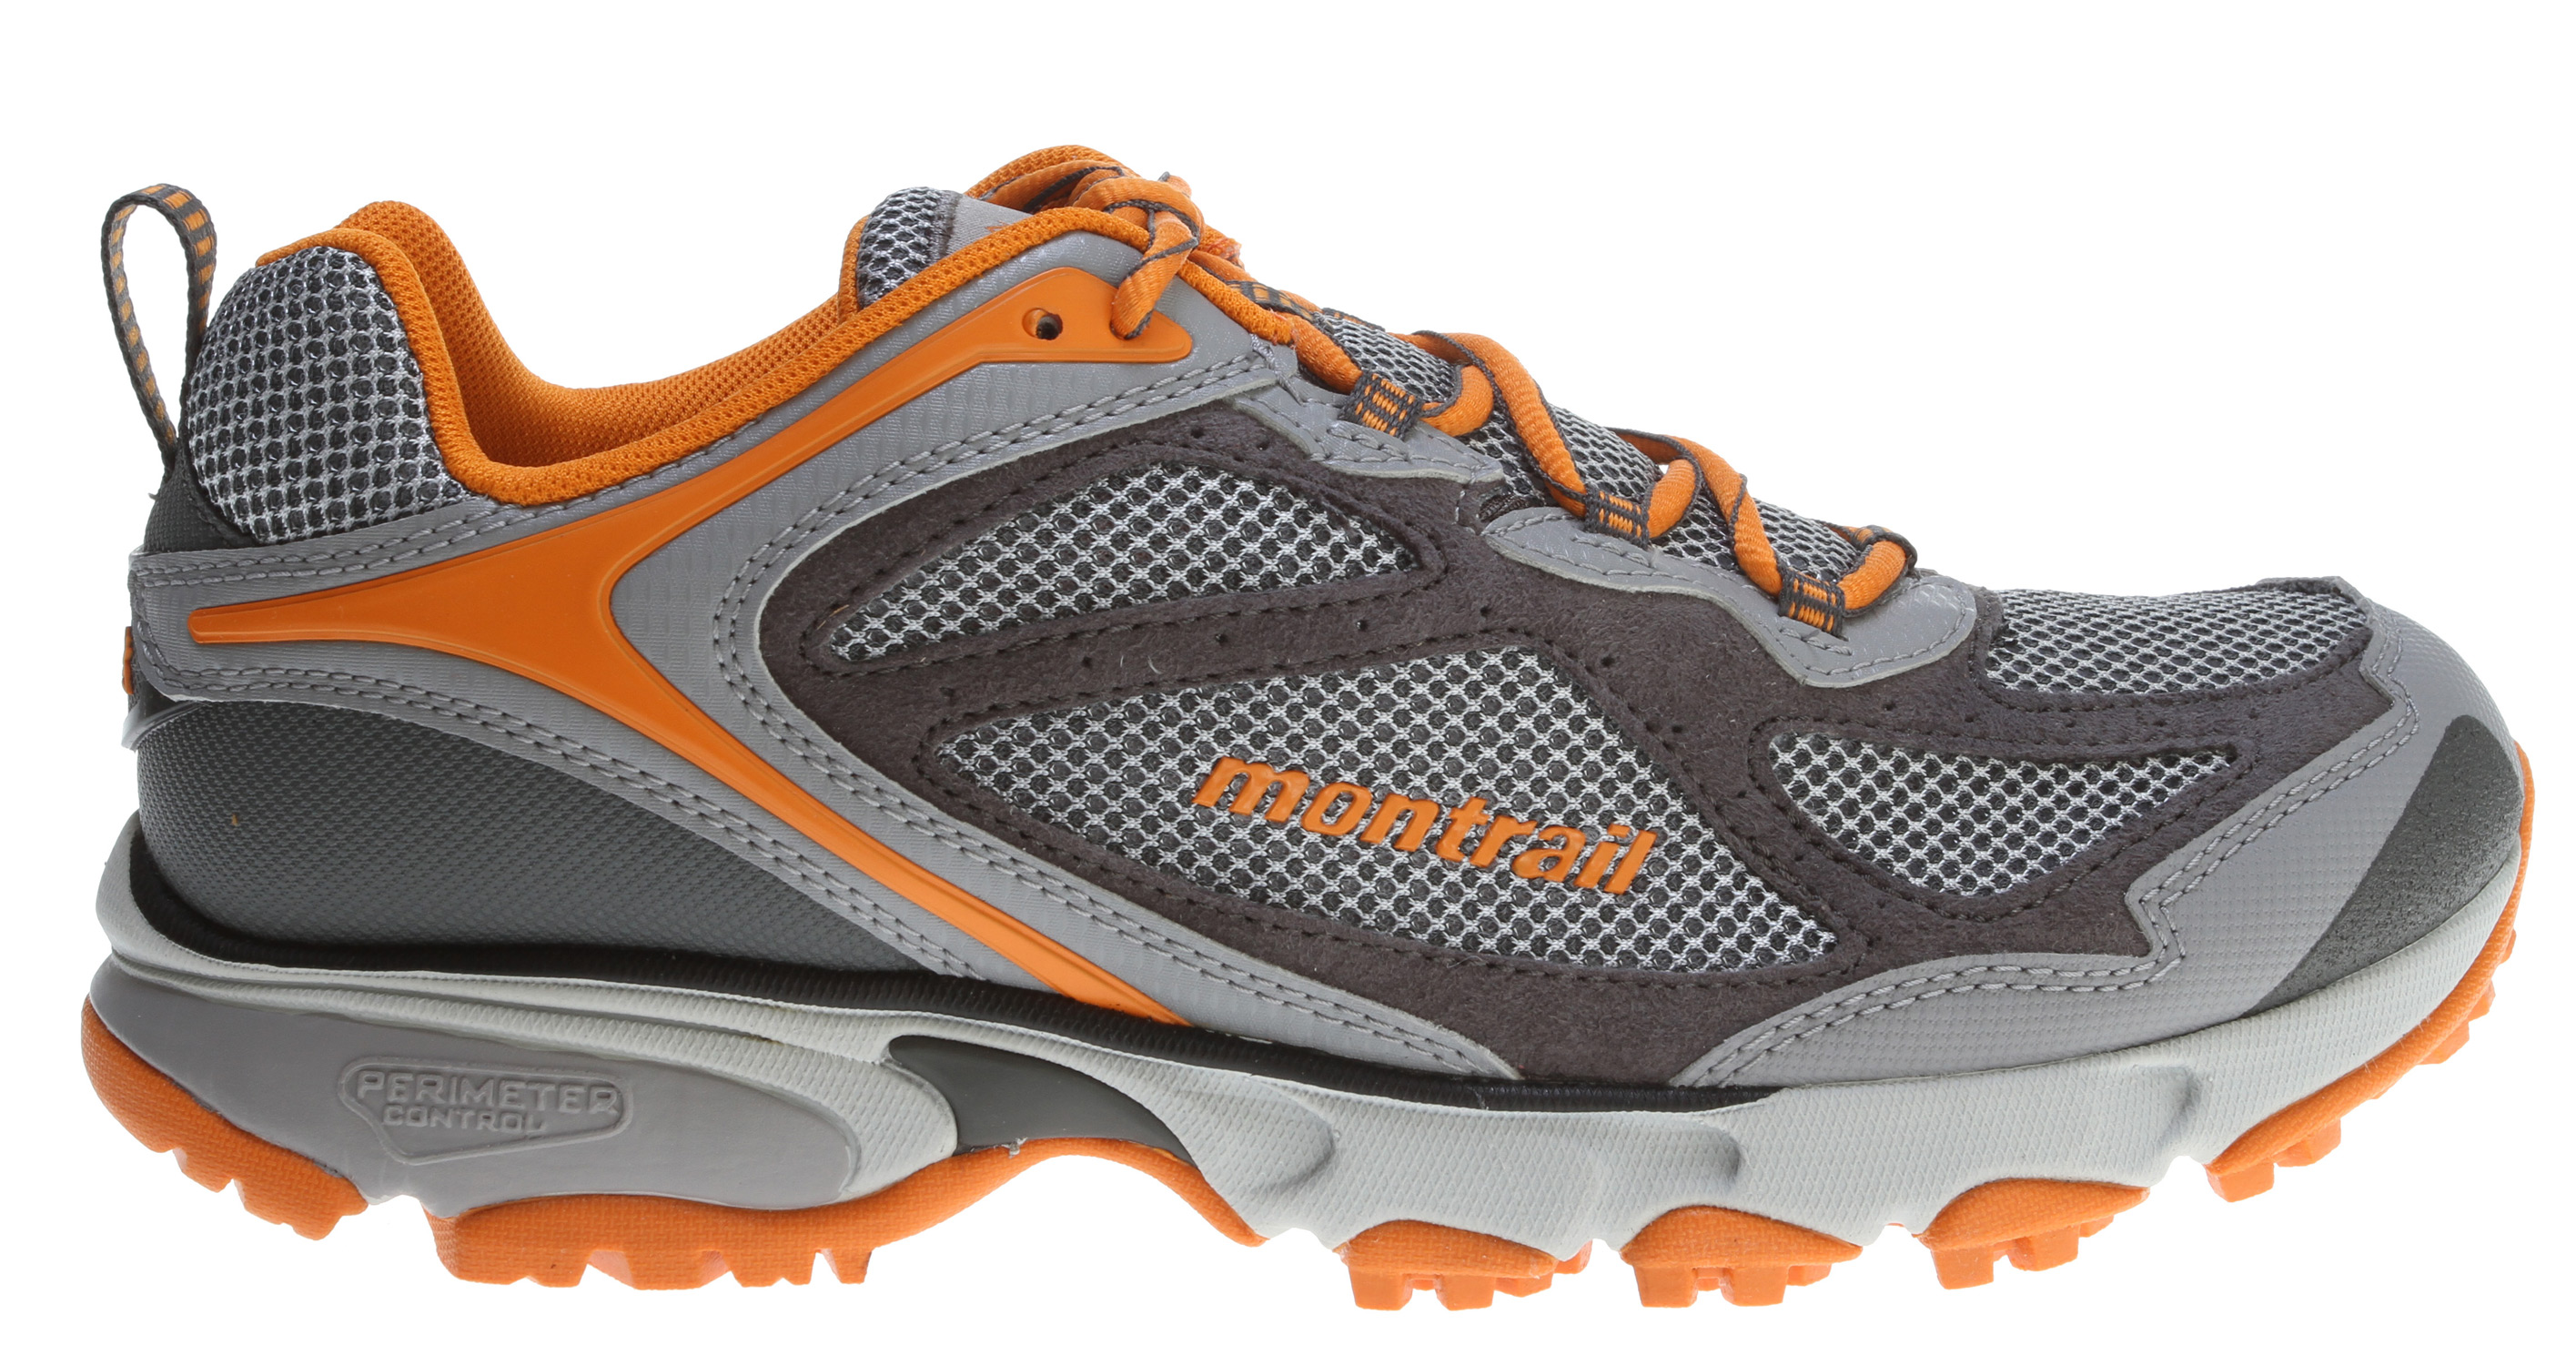 Camp and Hike Performance running shoe built for stability and protection on the trail.Key Features of the Montrail Sabino Trail Hiking Shoes: Weight: 12.8 oz / 363 g Durometer: Medial Post 68 Asker C / 58 Asker C (+/-3 degrees) Fit Notes: Wider forefoot - $69.95